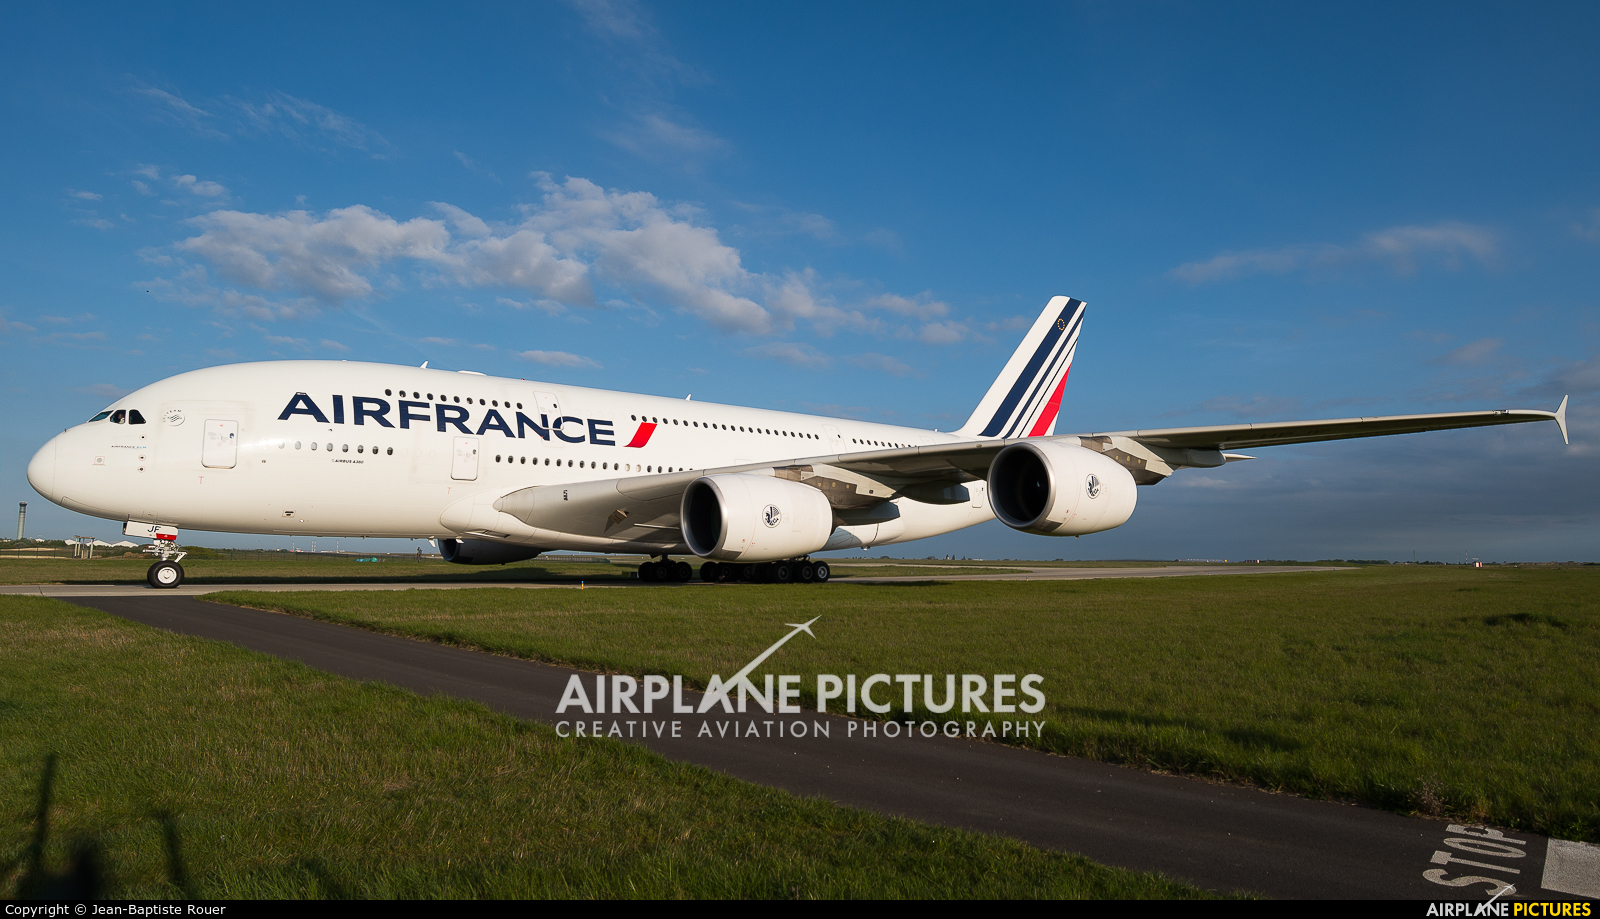 Air France F-HPJF aircraft at Paris - Charles de Gaulle